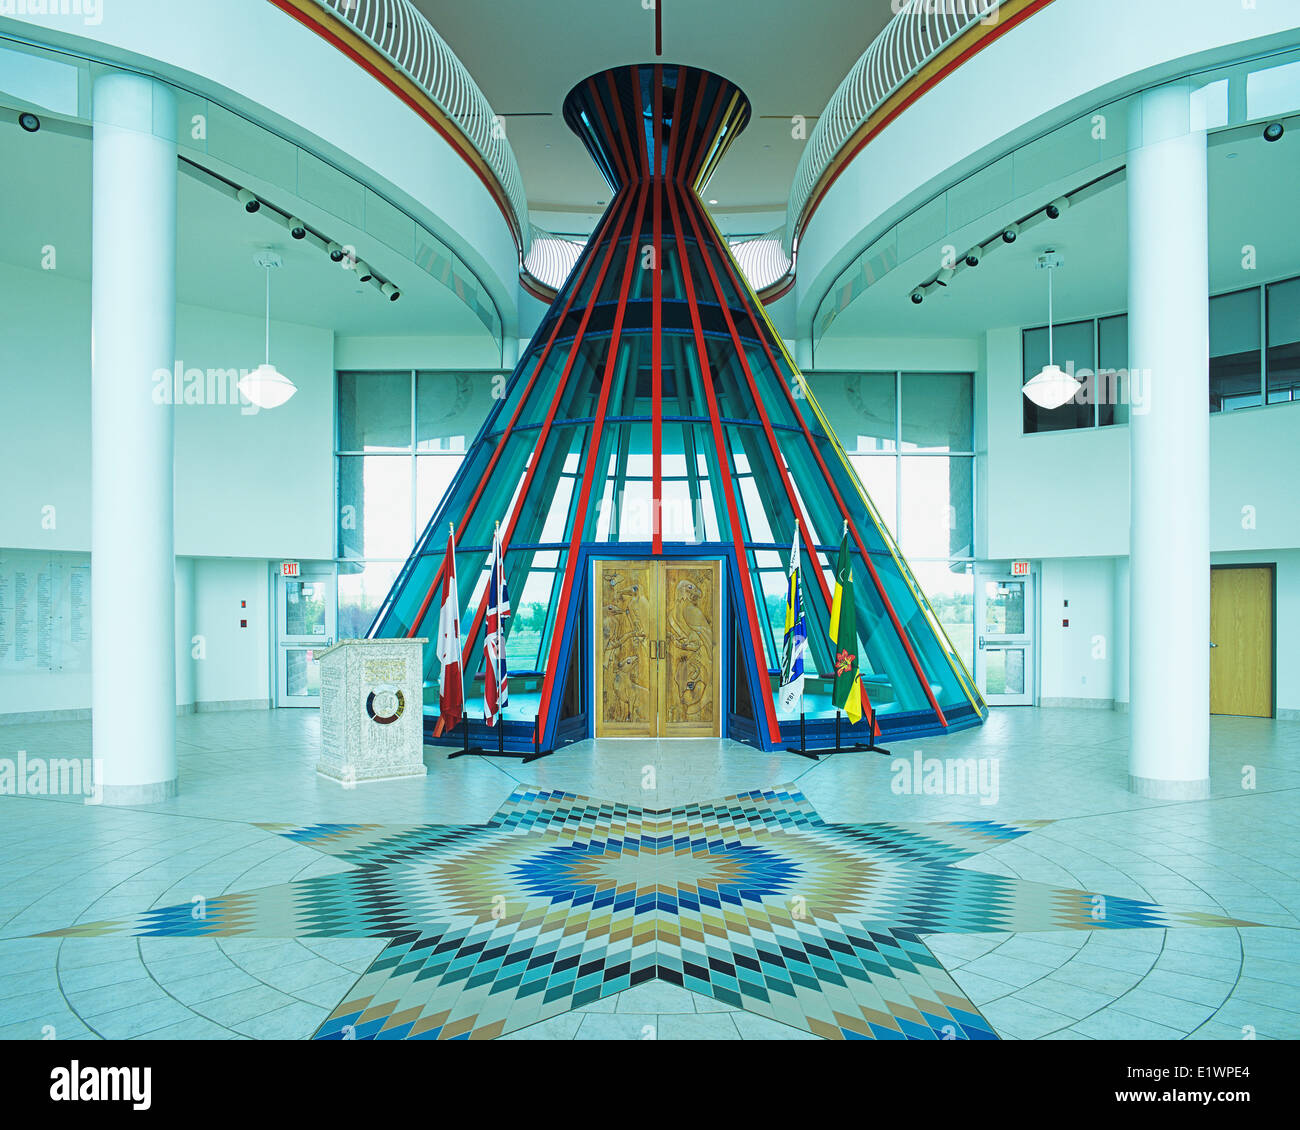 First Nations University First Nations Veterans Memorial Tipi Stock Photo 70022572 Alamy